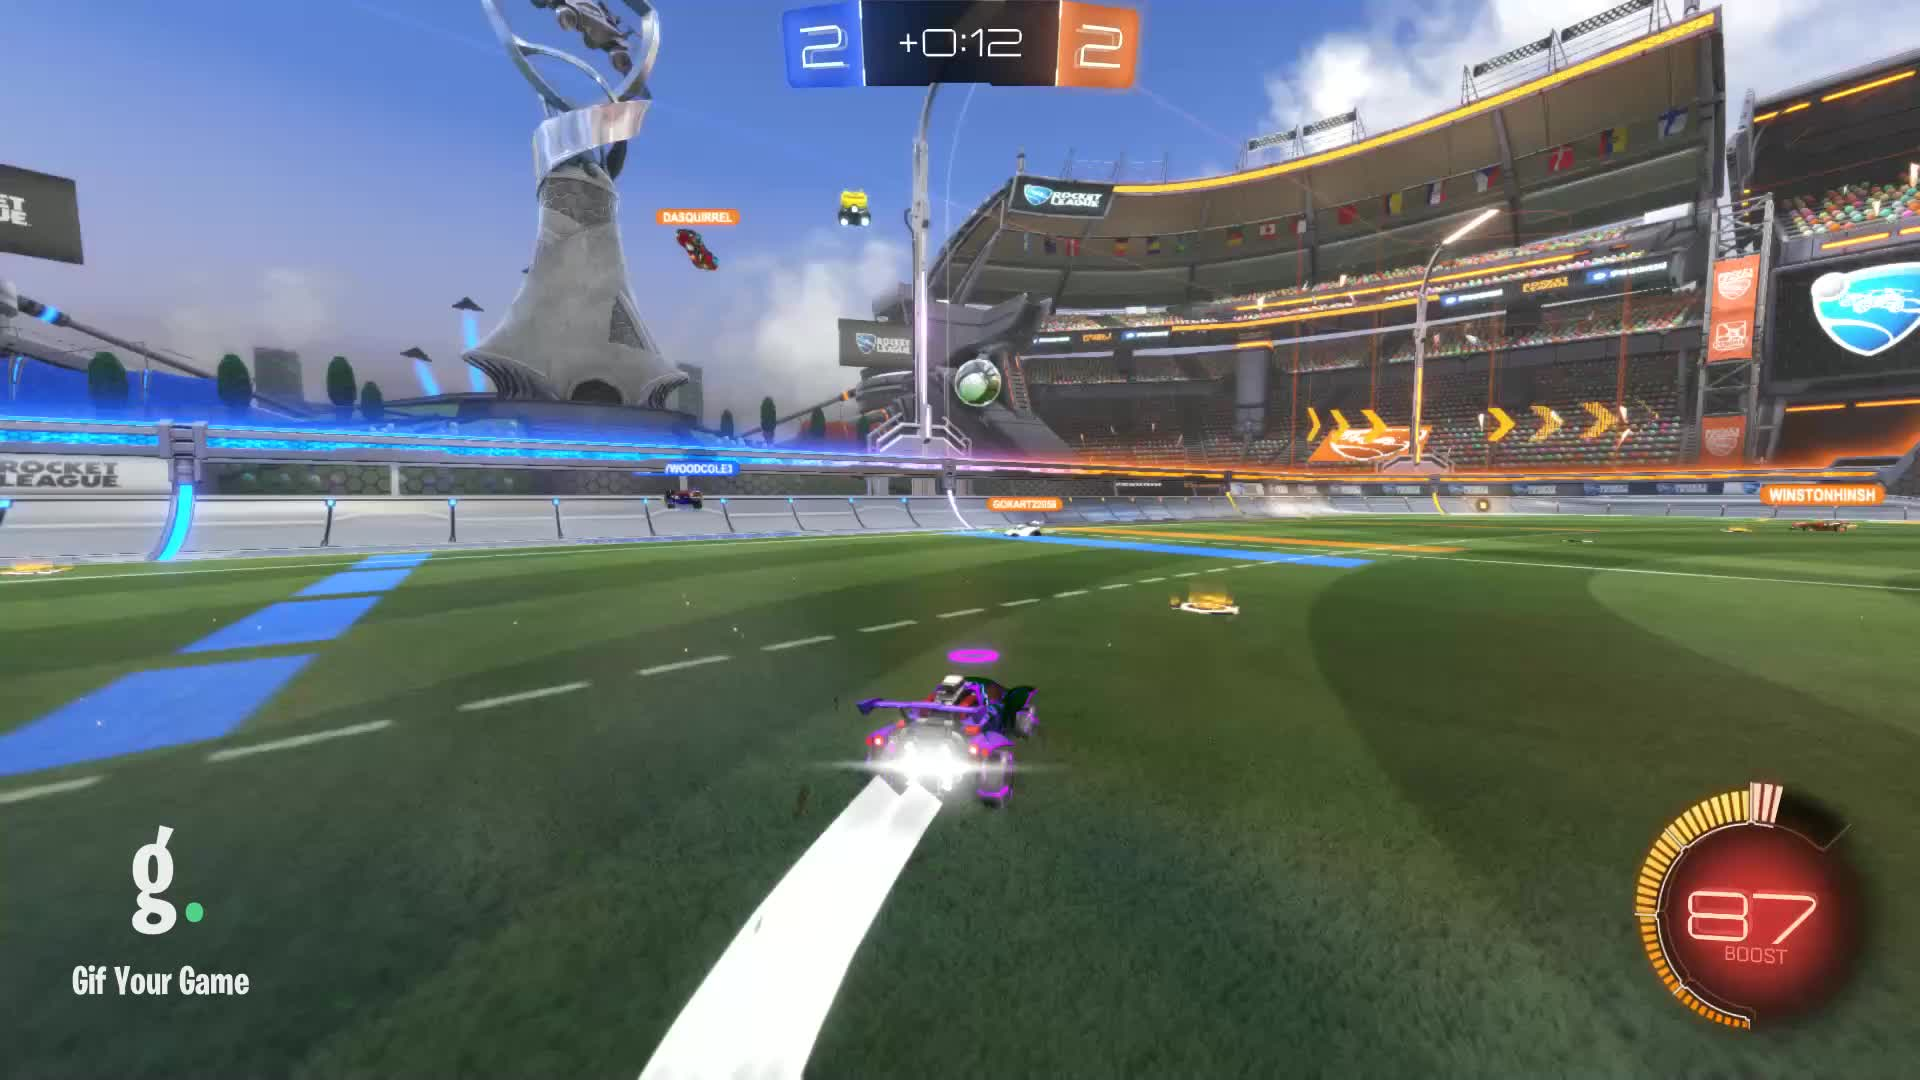 Gif Your Game, GifYourGame, Goal, Rocket League, RocketLeague, Twitch.Sa1ty, Goal 5: Twitch.Sa1ty GIFs